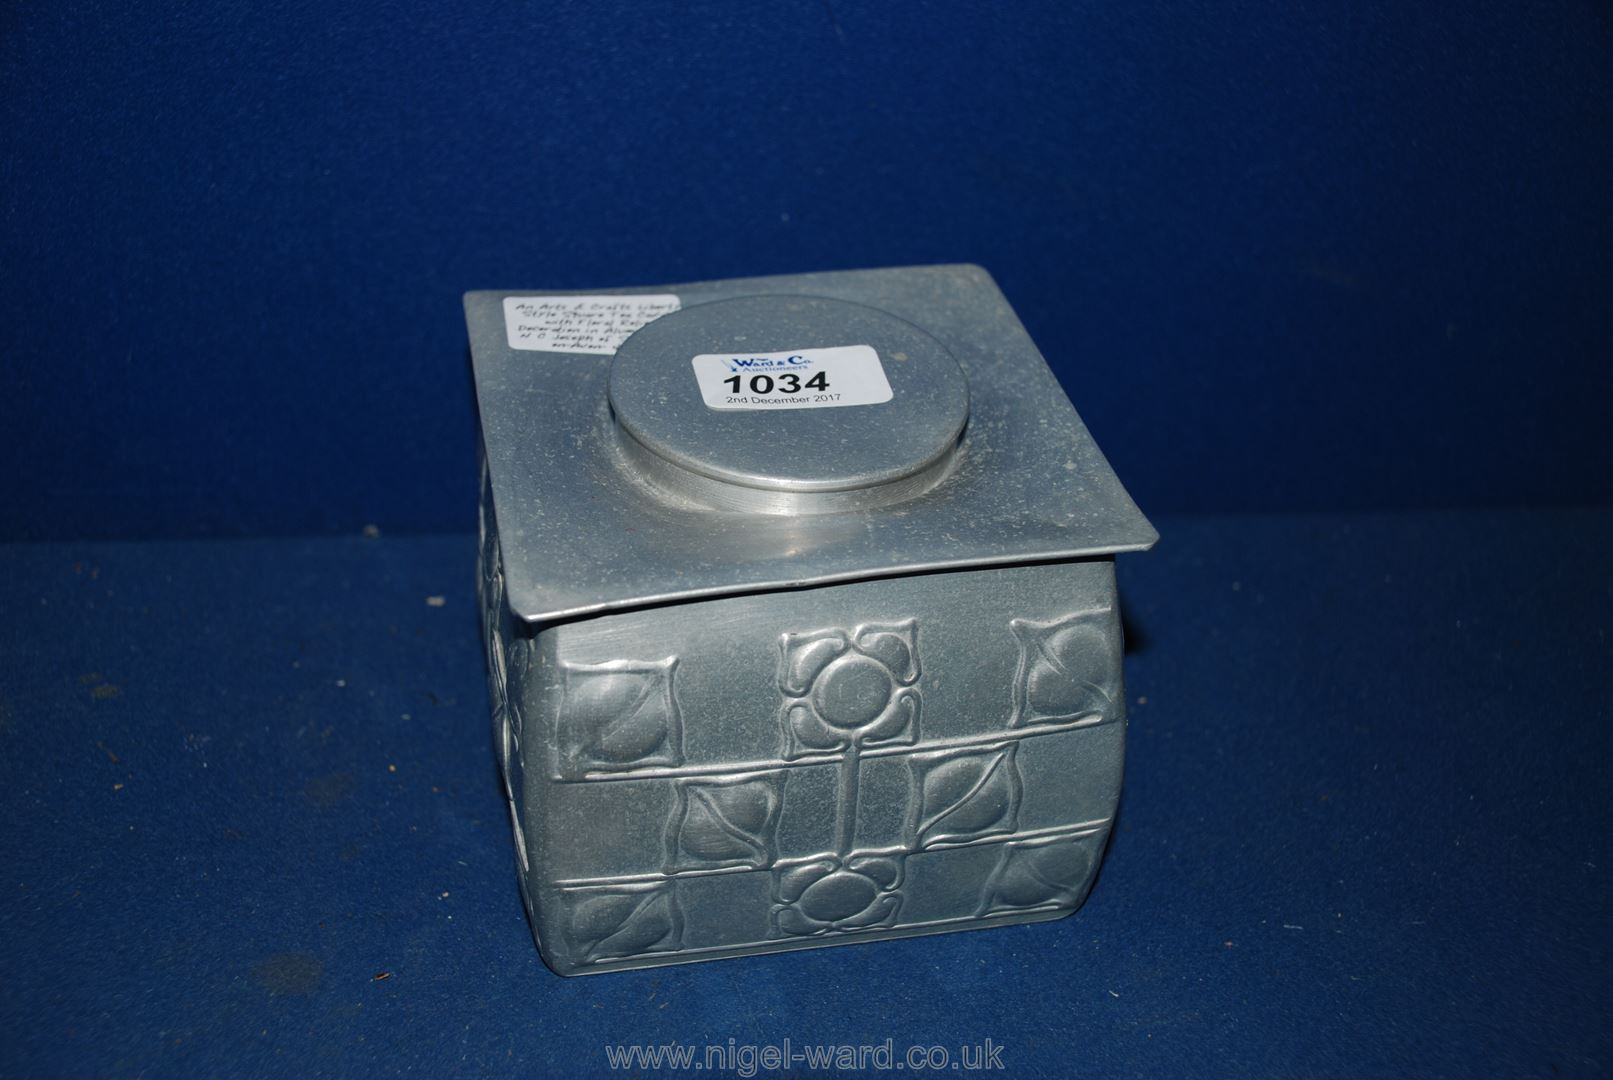 Lot 1034 - An Arts & Crafts Liberty Style Square Tea Caddy with Floral Relief Decoration in Aluminium by N C